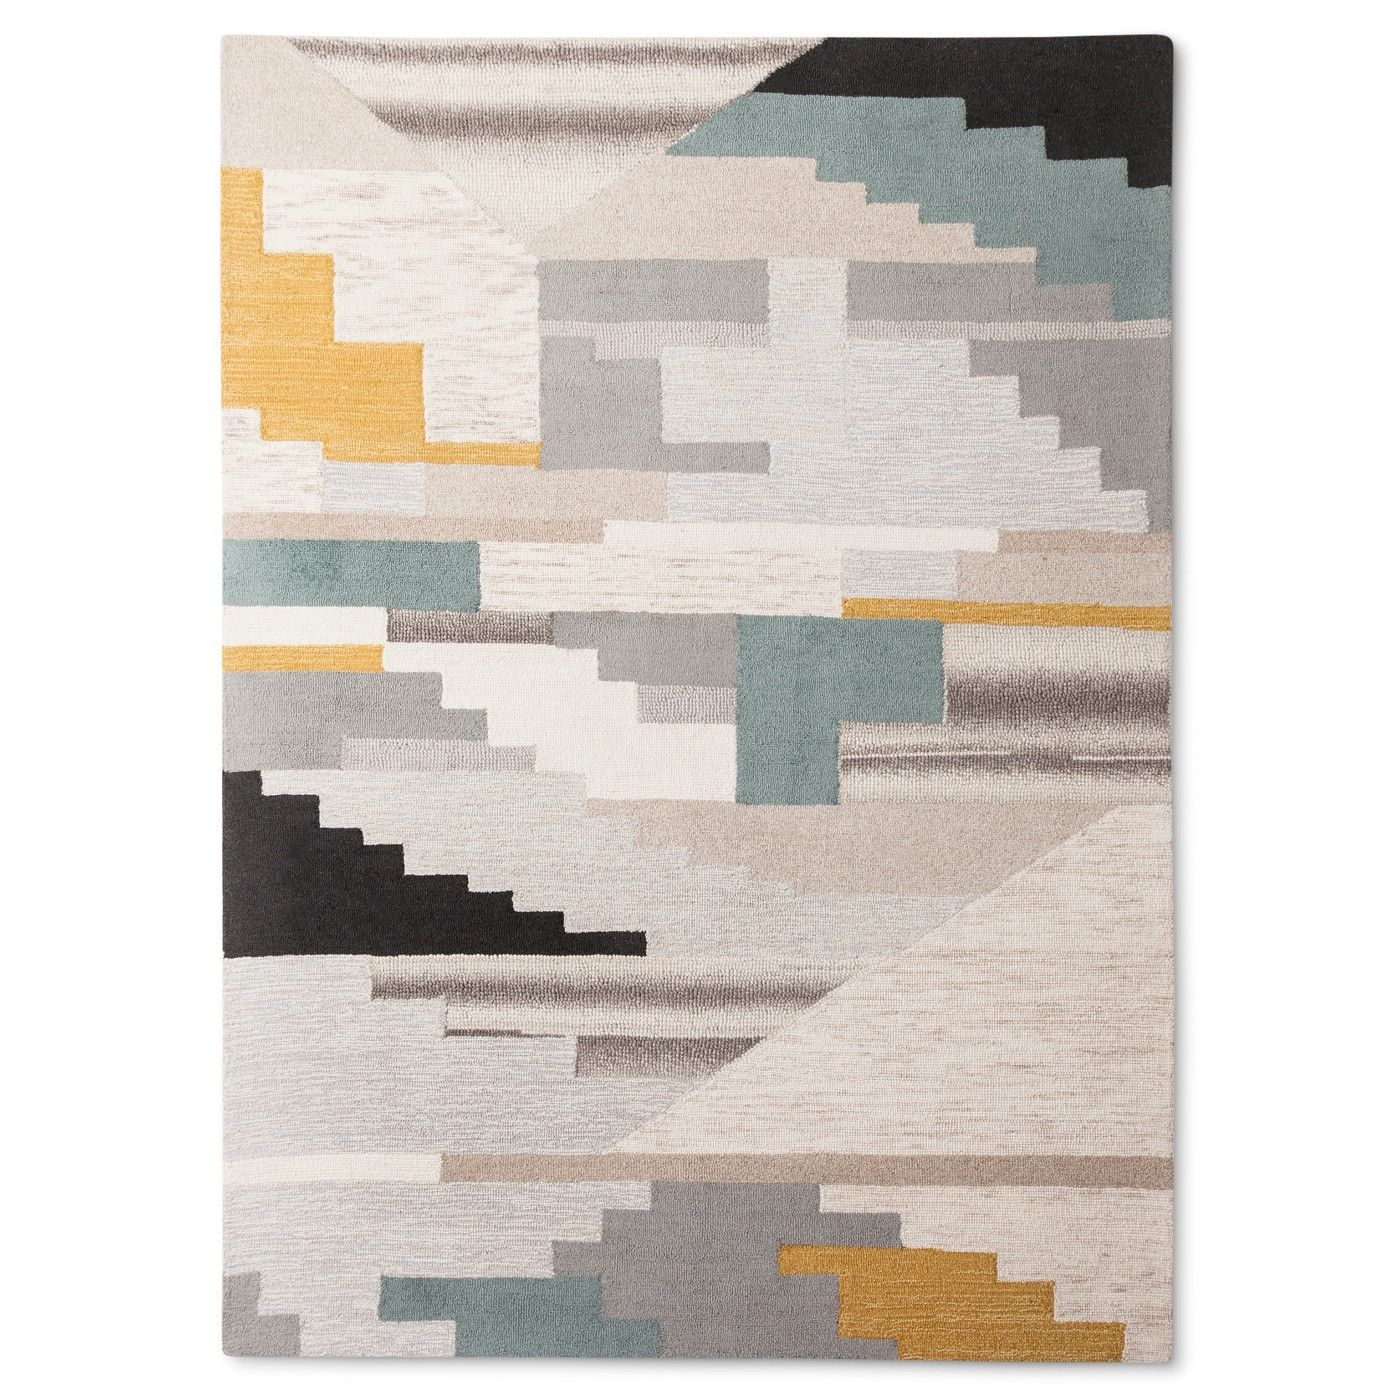 Abstract Tufted Area Rug Project 62 Image 1 Of 2 378 9x12 Area Rugs Target Rug